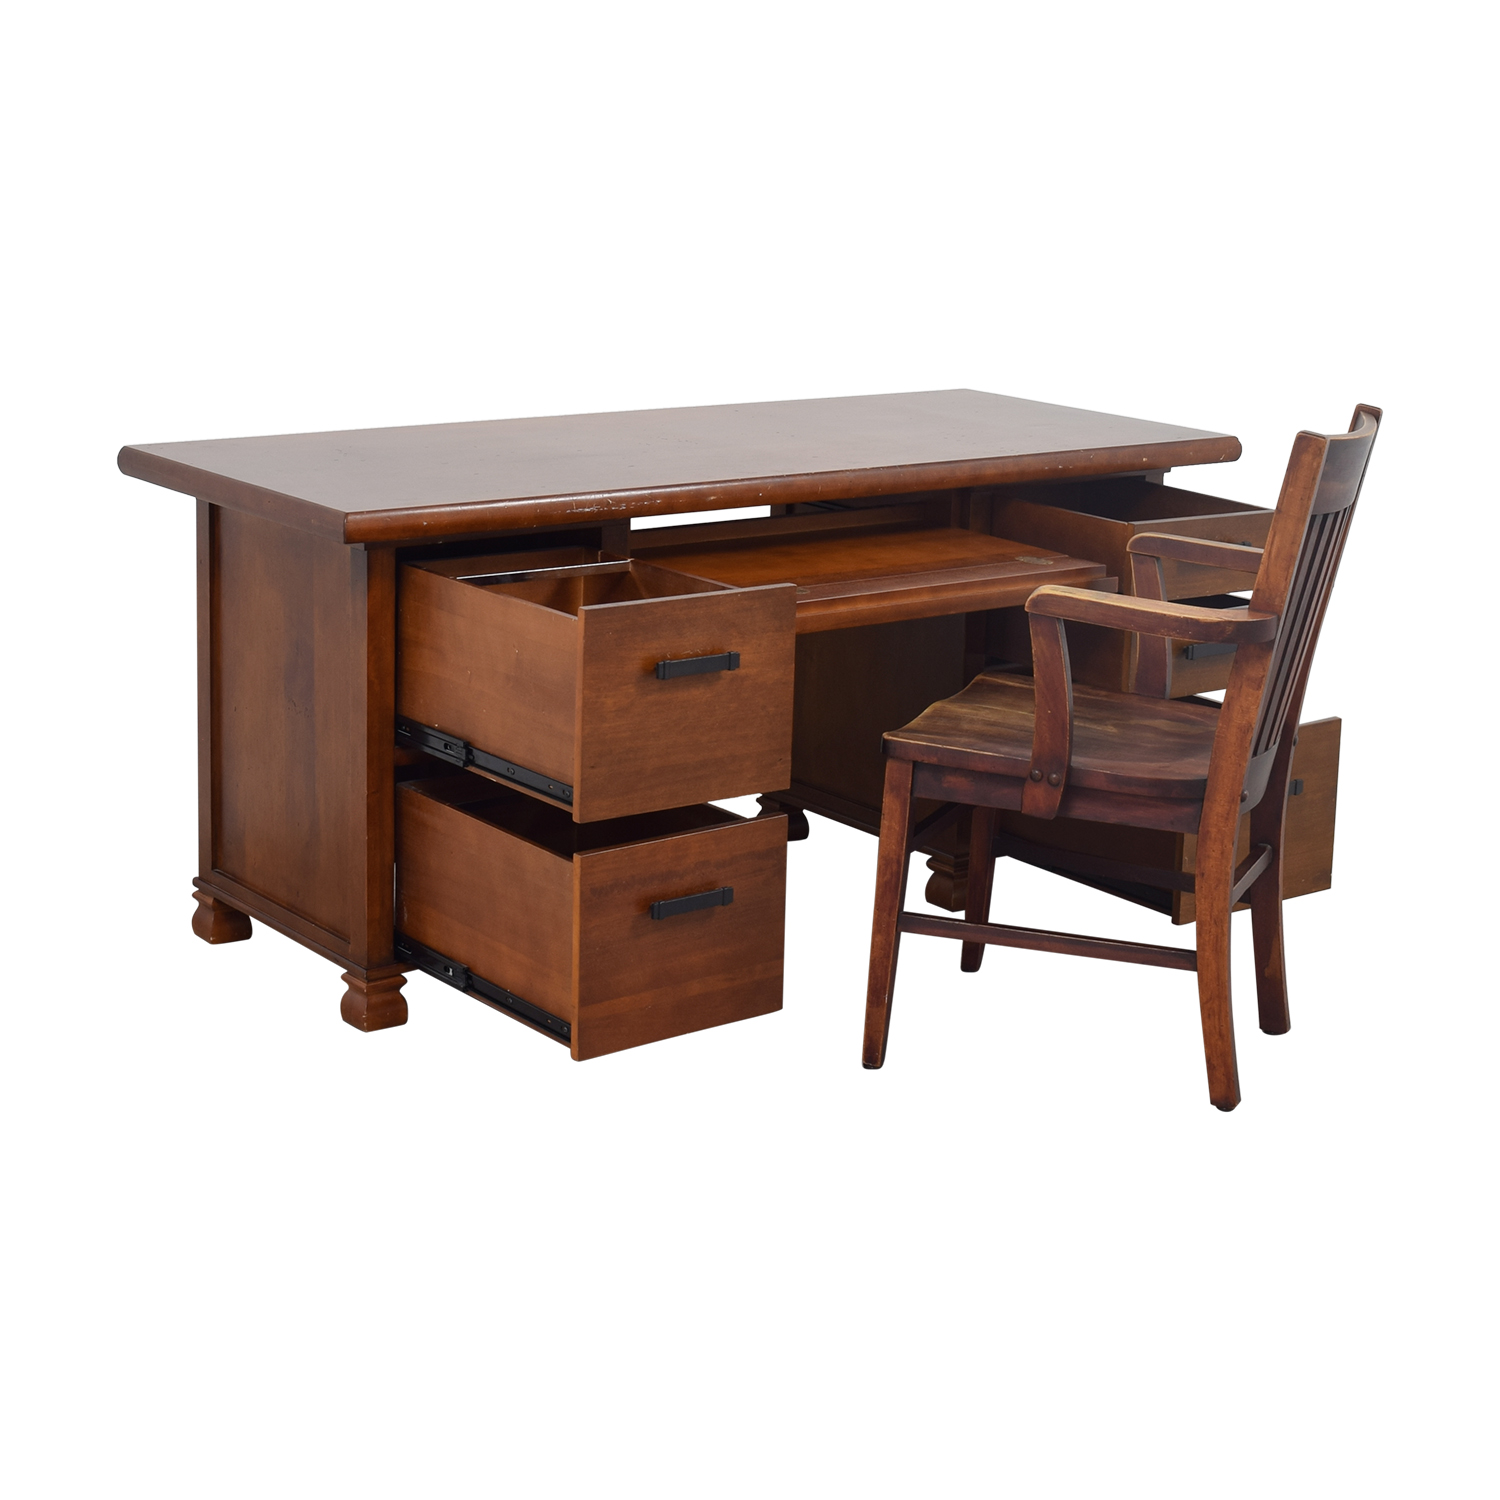 Pottery Barn Pottery Barn Wooden Cherry Desk with Chair discount